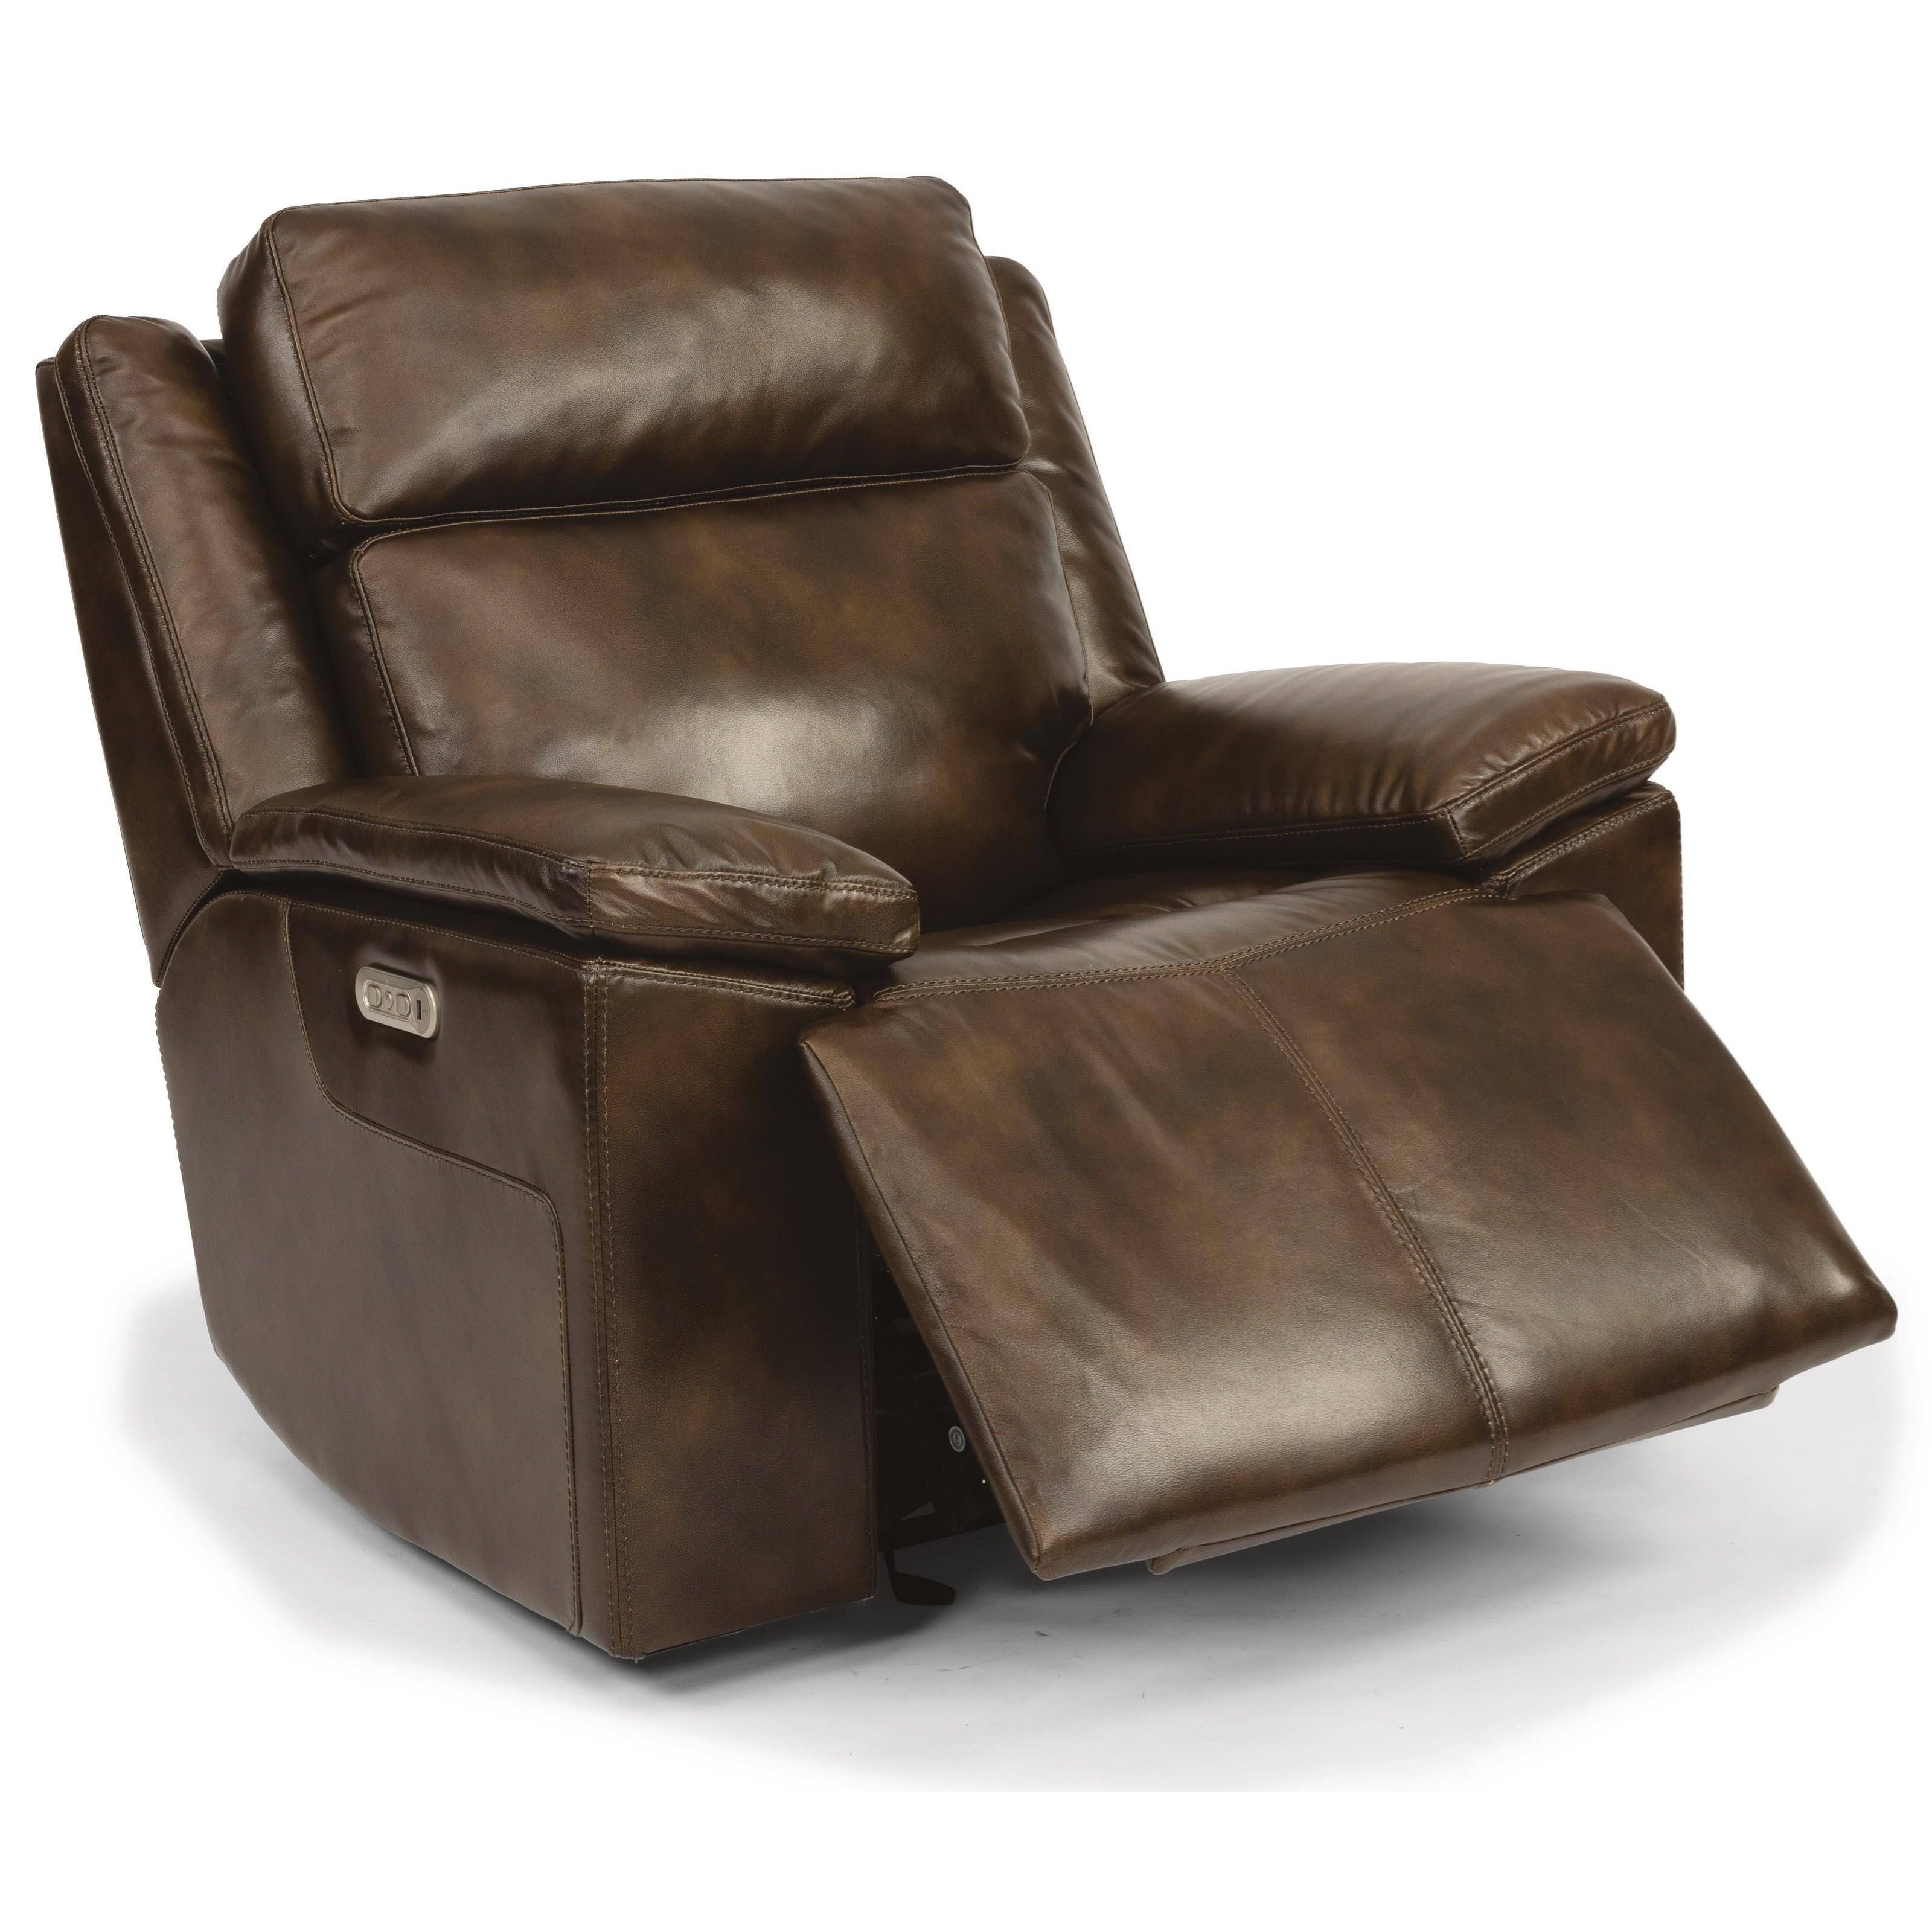 Latitudes - Chance Pwr Gliding Recl w/ Pwr Headrest by Flexsteel at Walker's Furniture